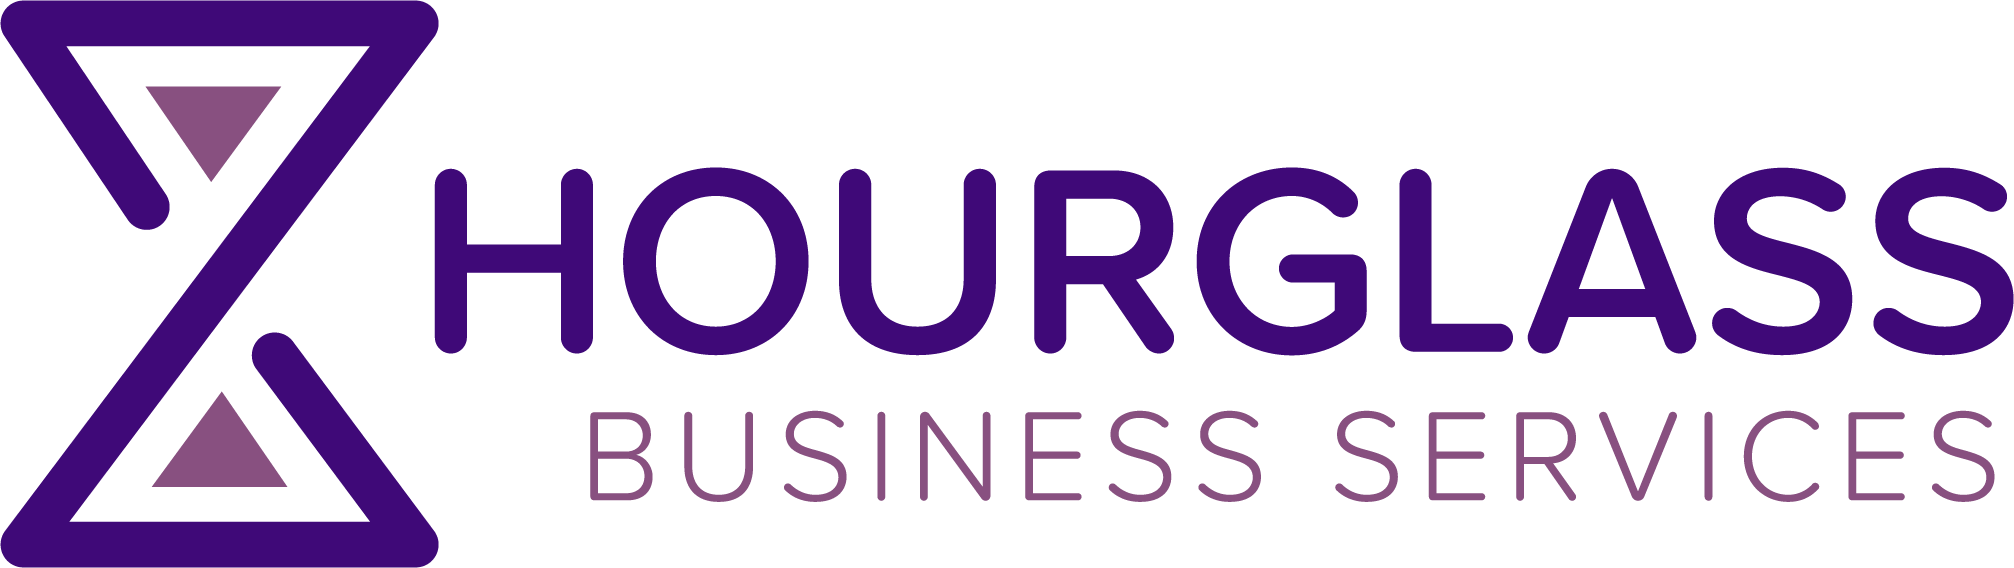 Hourglass Business Services